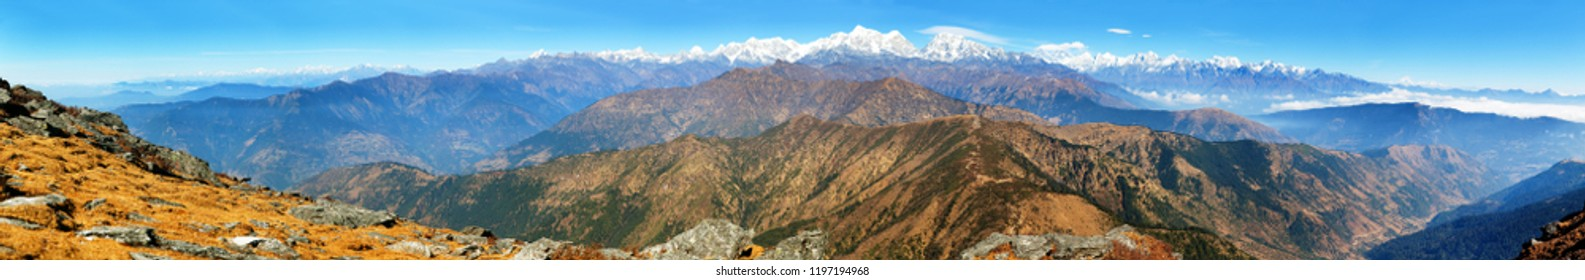 Panoramic view of himalaya range from Pikey peak - trekking trail from Jiri Bazar to Lukla and Everest base camp, nepalese himalayas, mounts Everest and Lhotse, Nepal Himalayas